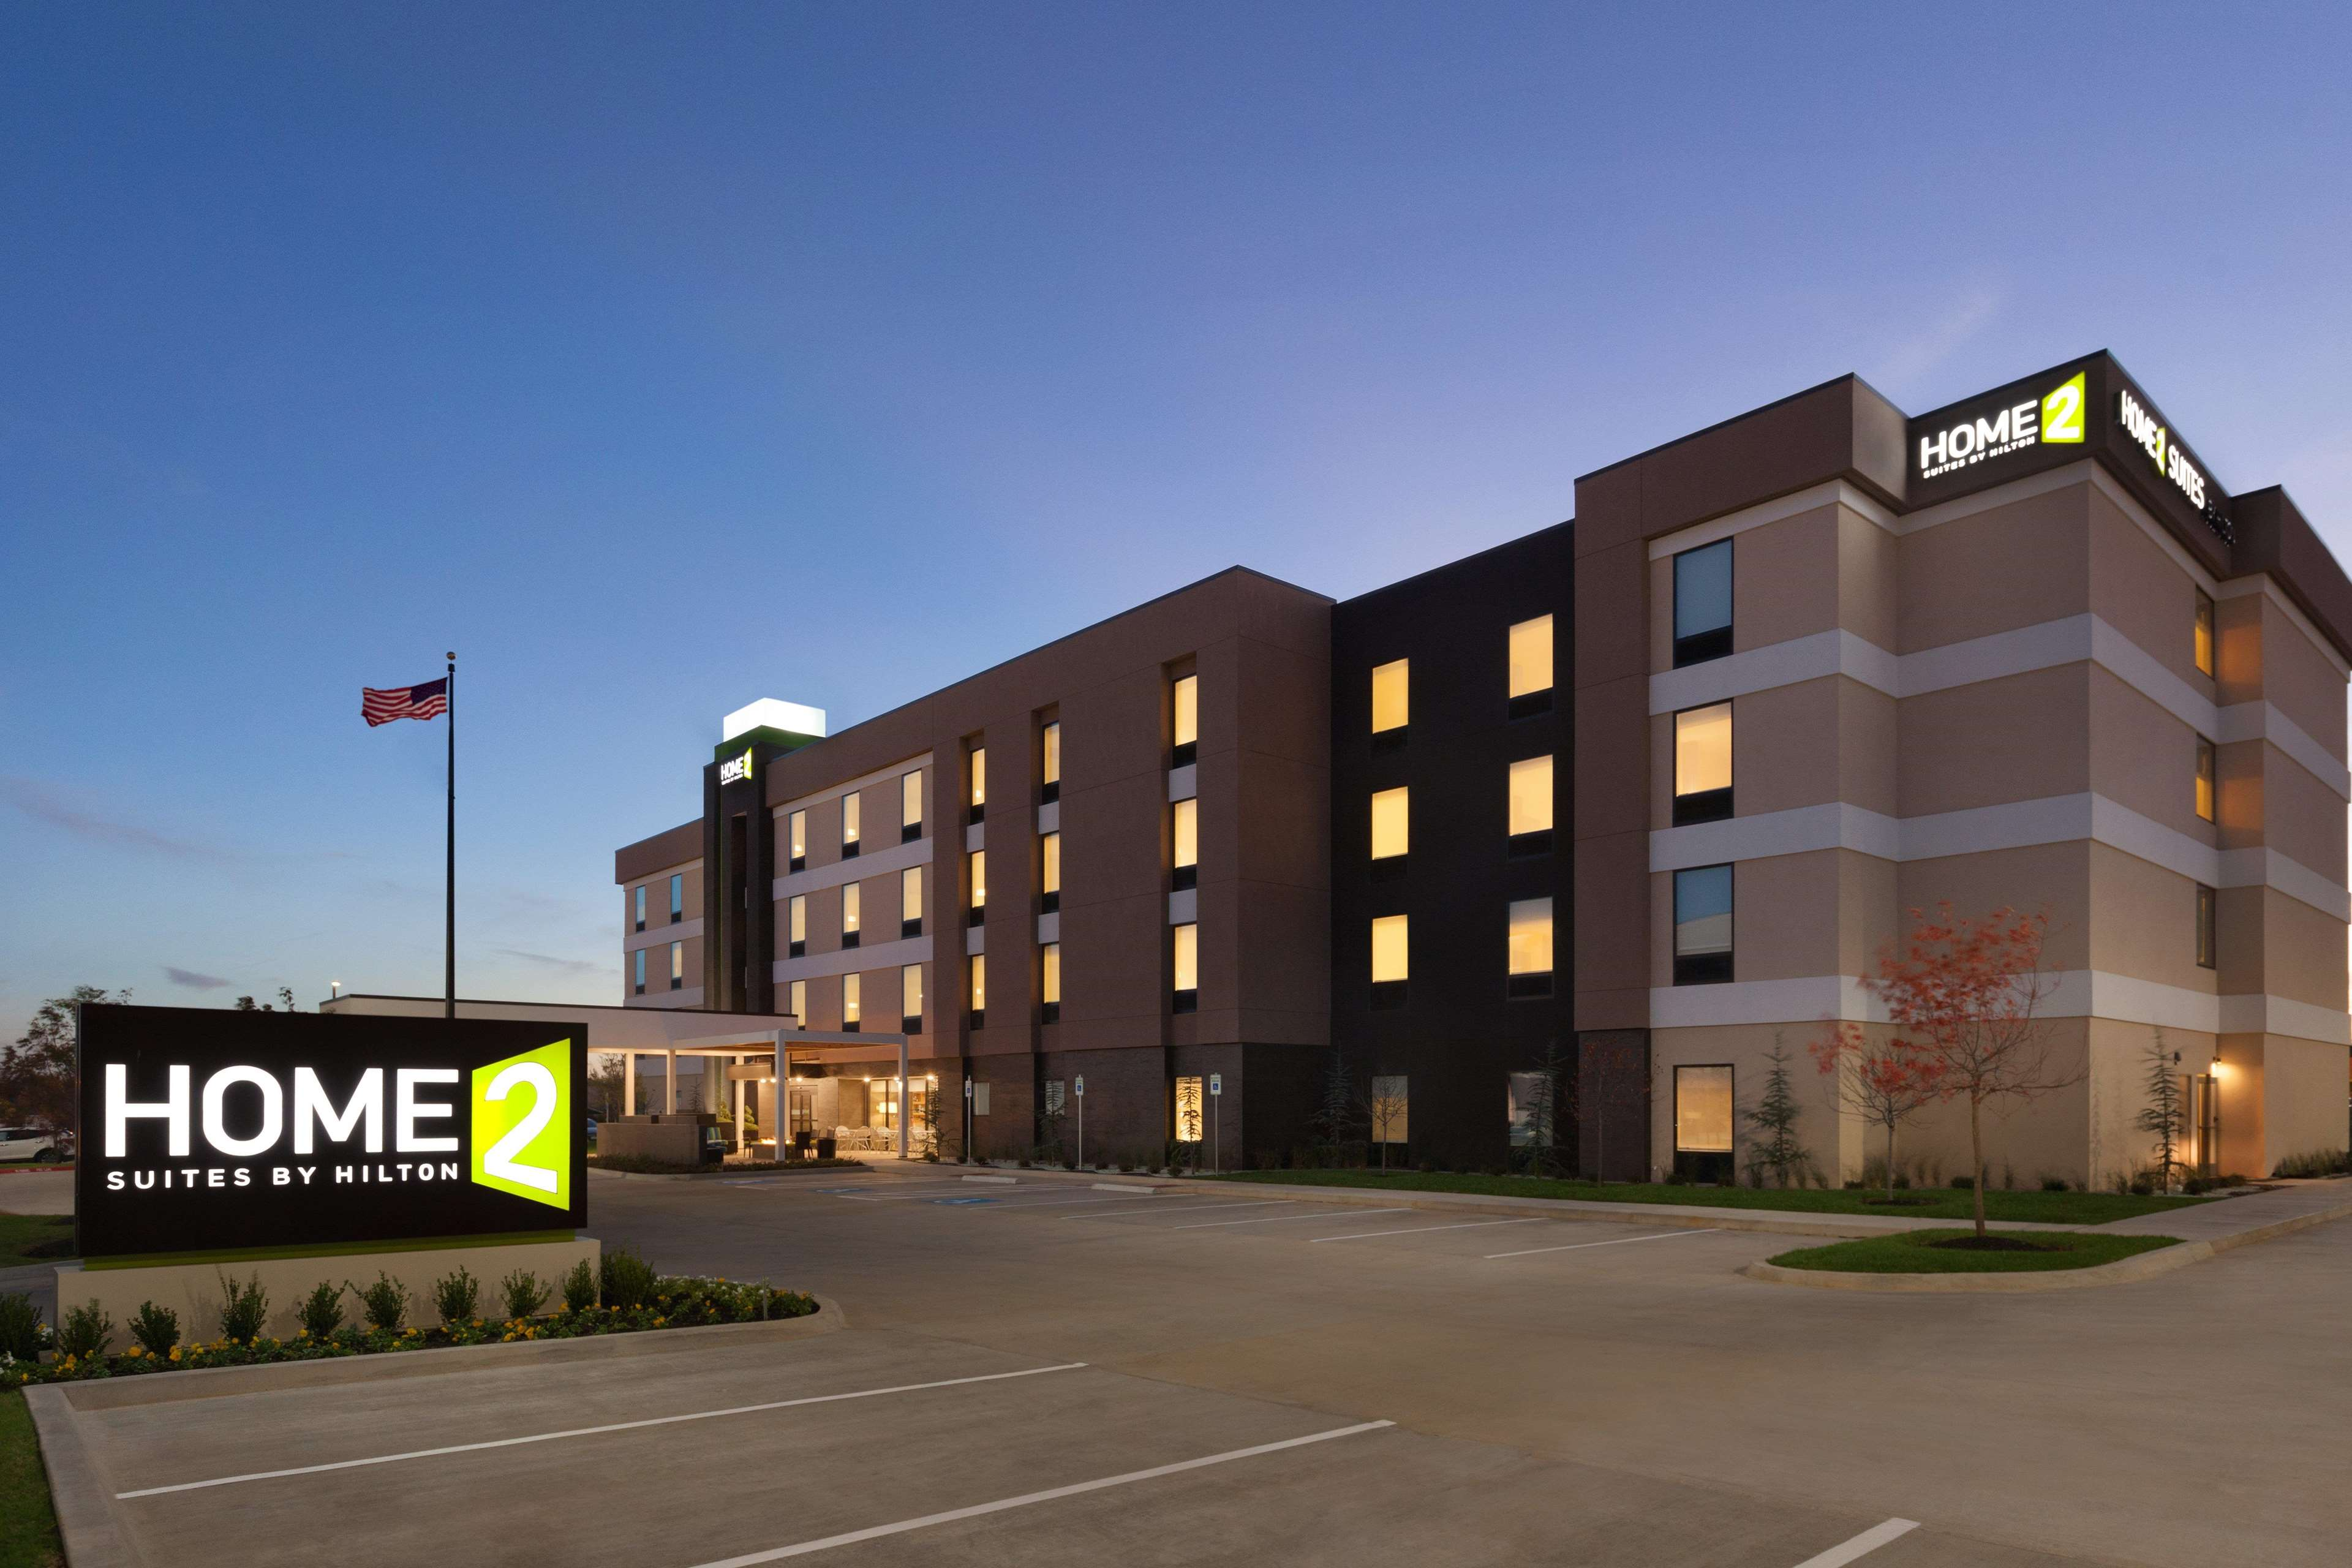 Home2 Suites by Hilton Oklahoma City South